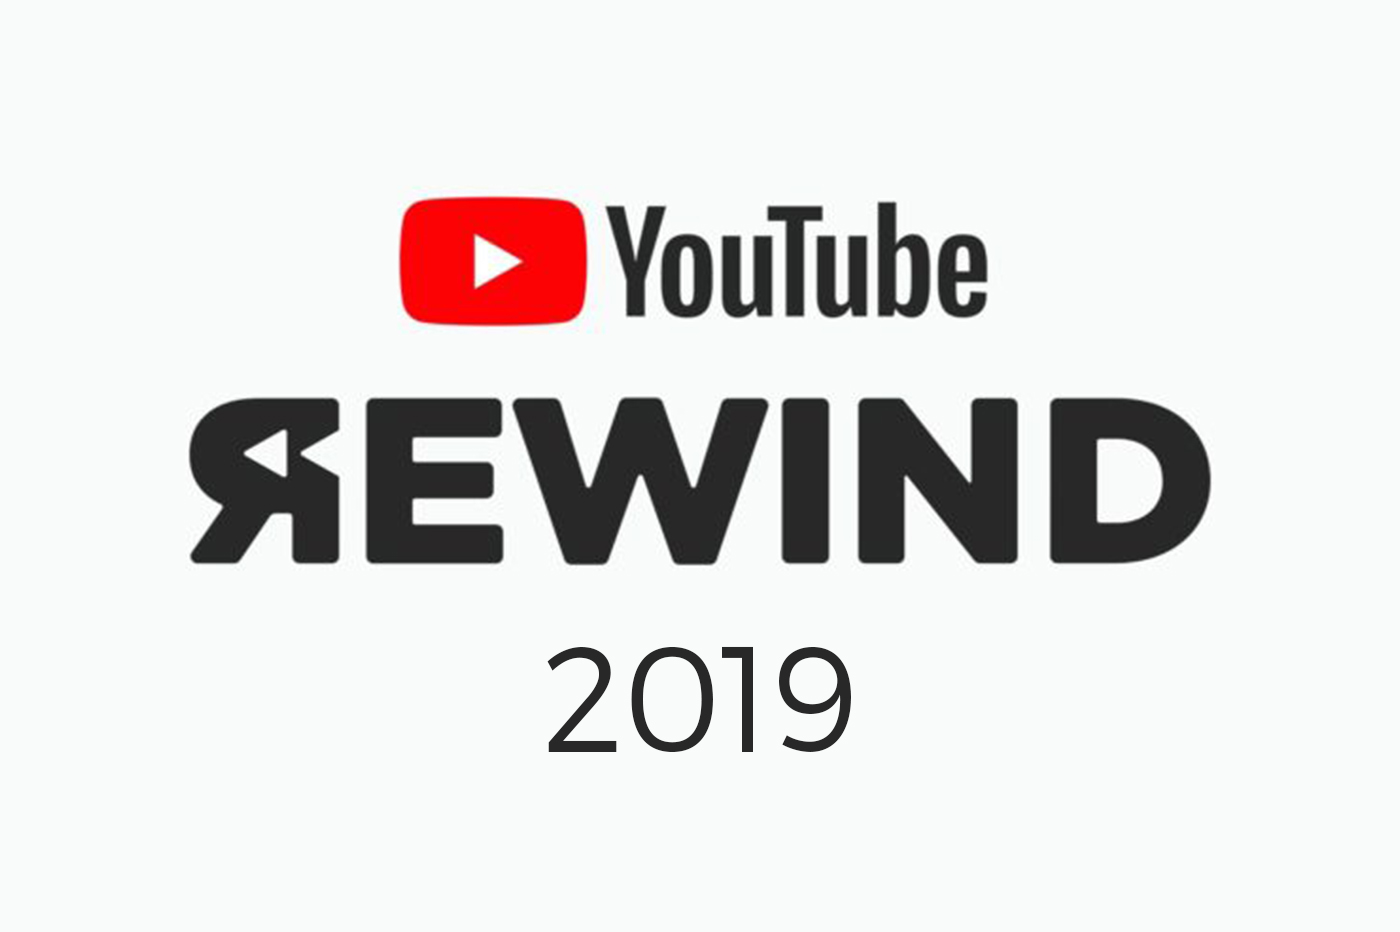 YouTube Rewind 2019: For the Record